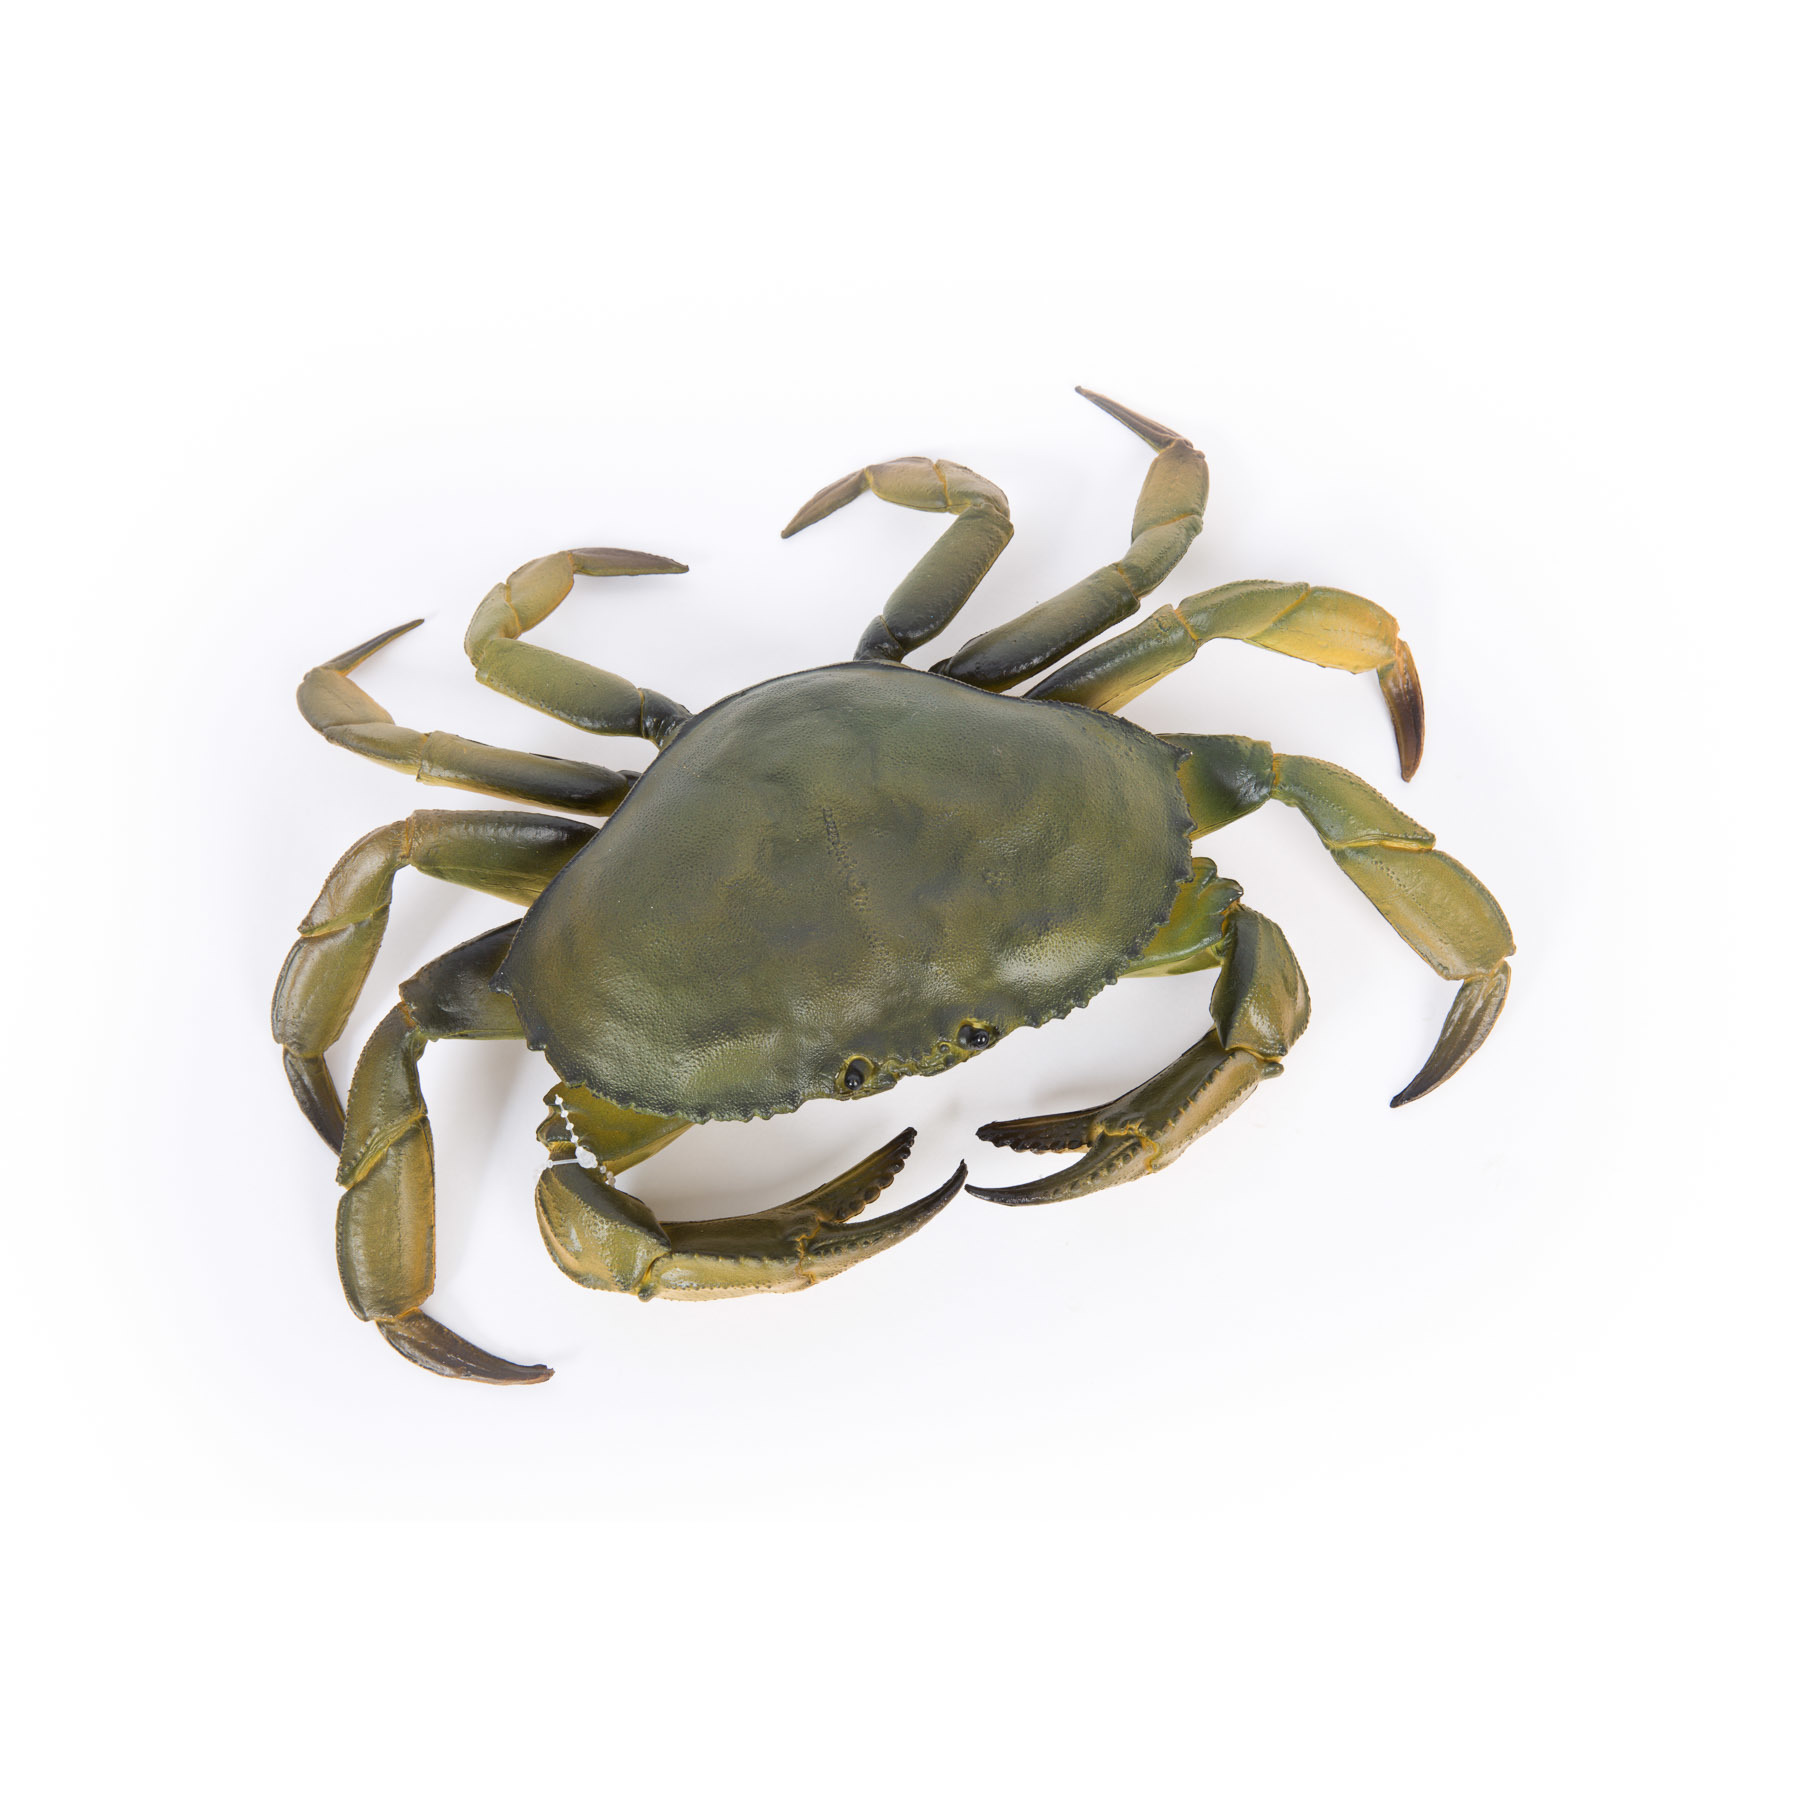 Lifelike Edible Crab 31cm 00178